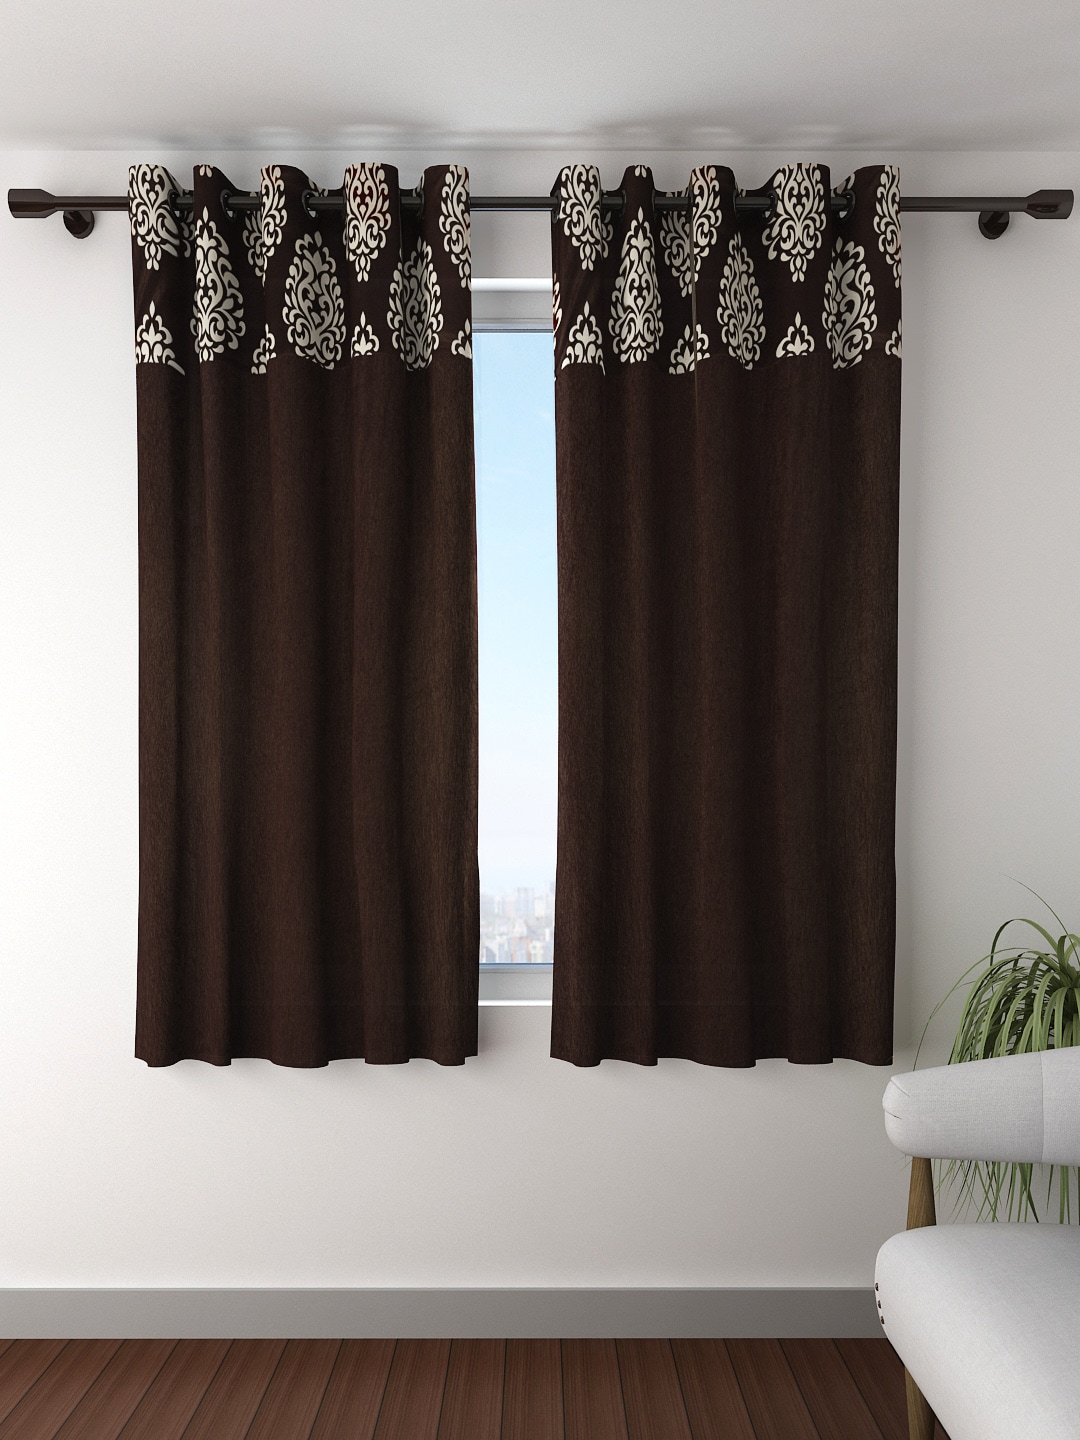 Fashion week Buy curtains stylish online india for girls